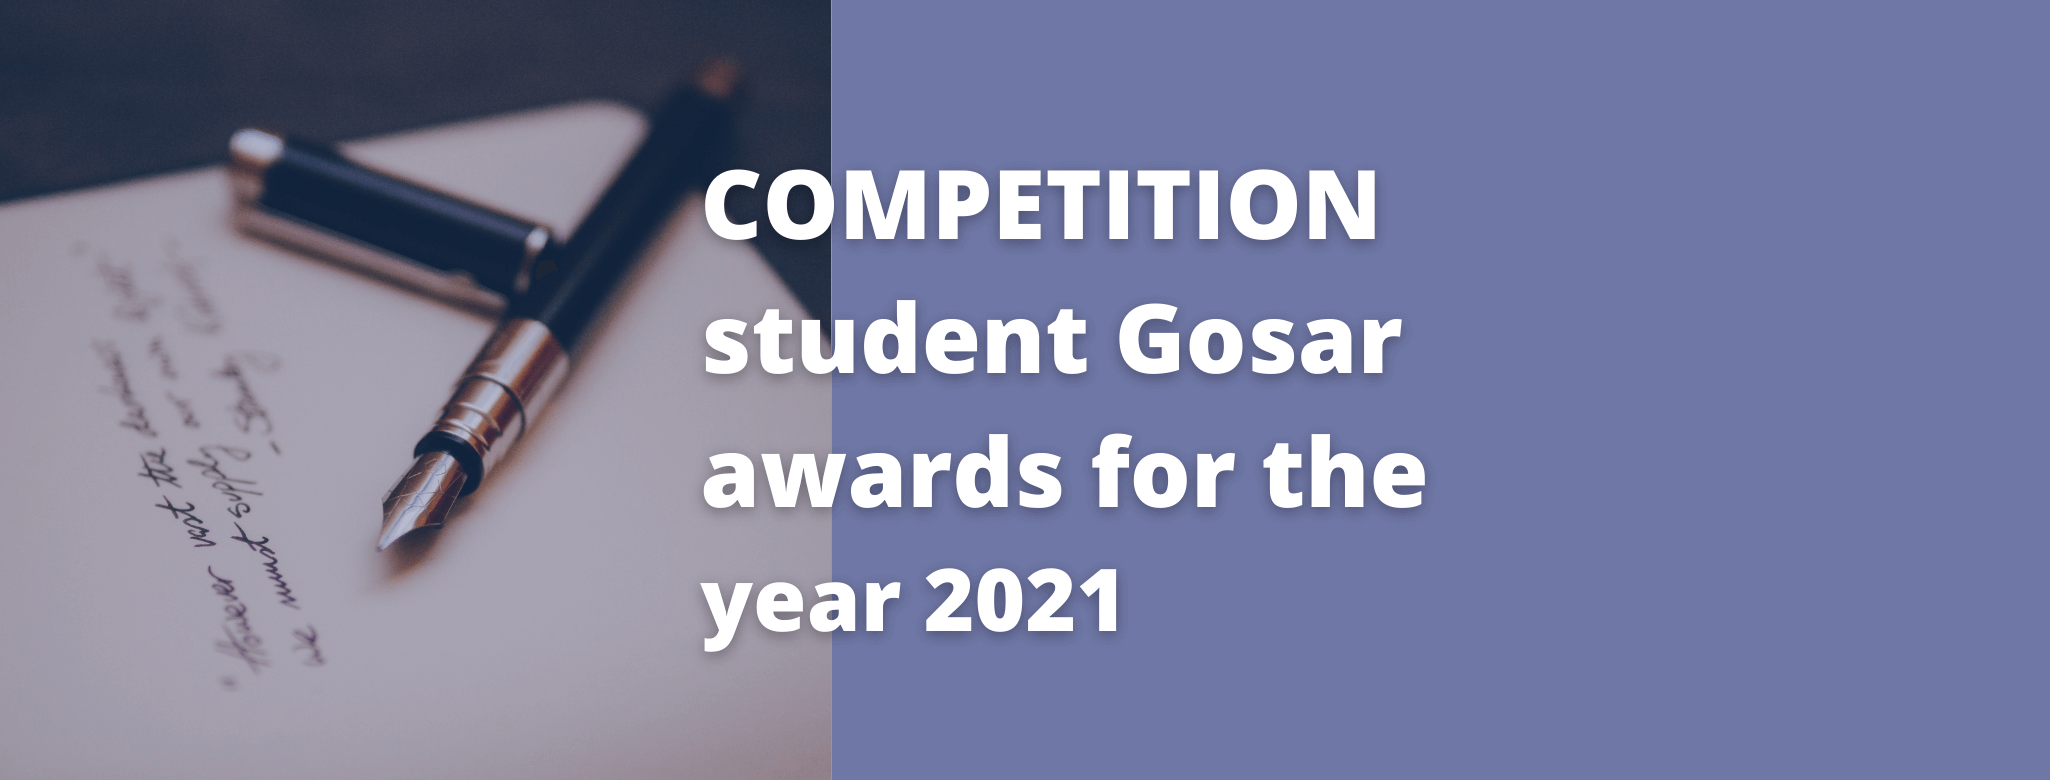 COMPETITION student Gosar awards for the year 2021